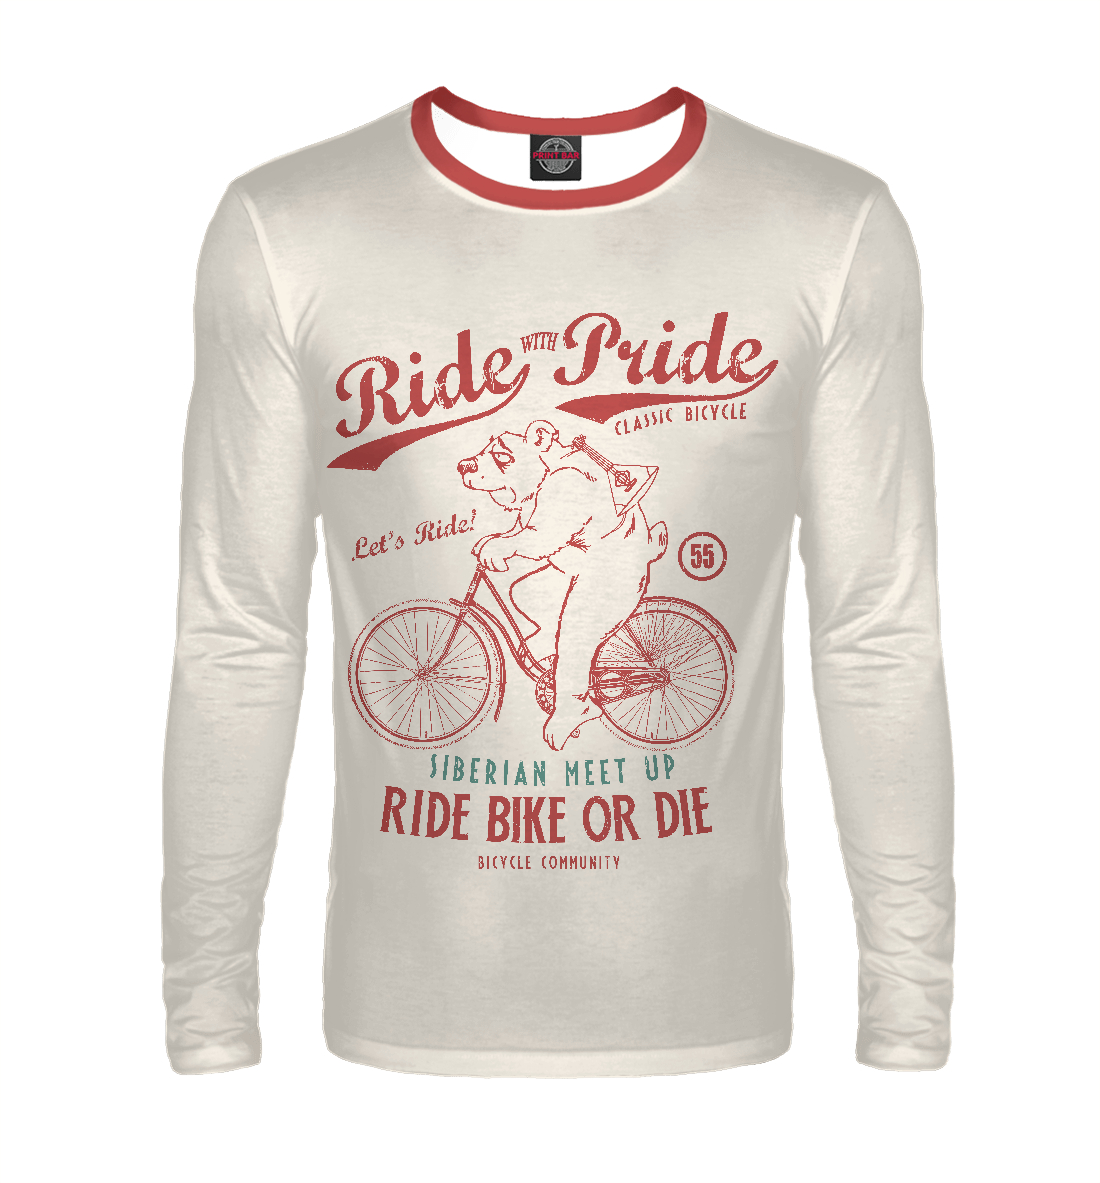 Ride with Pride tell it with pride